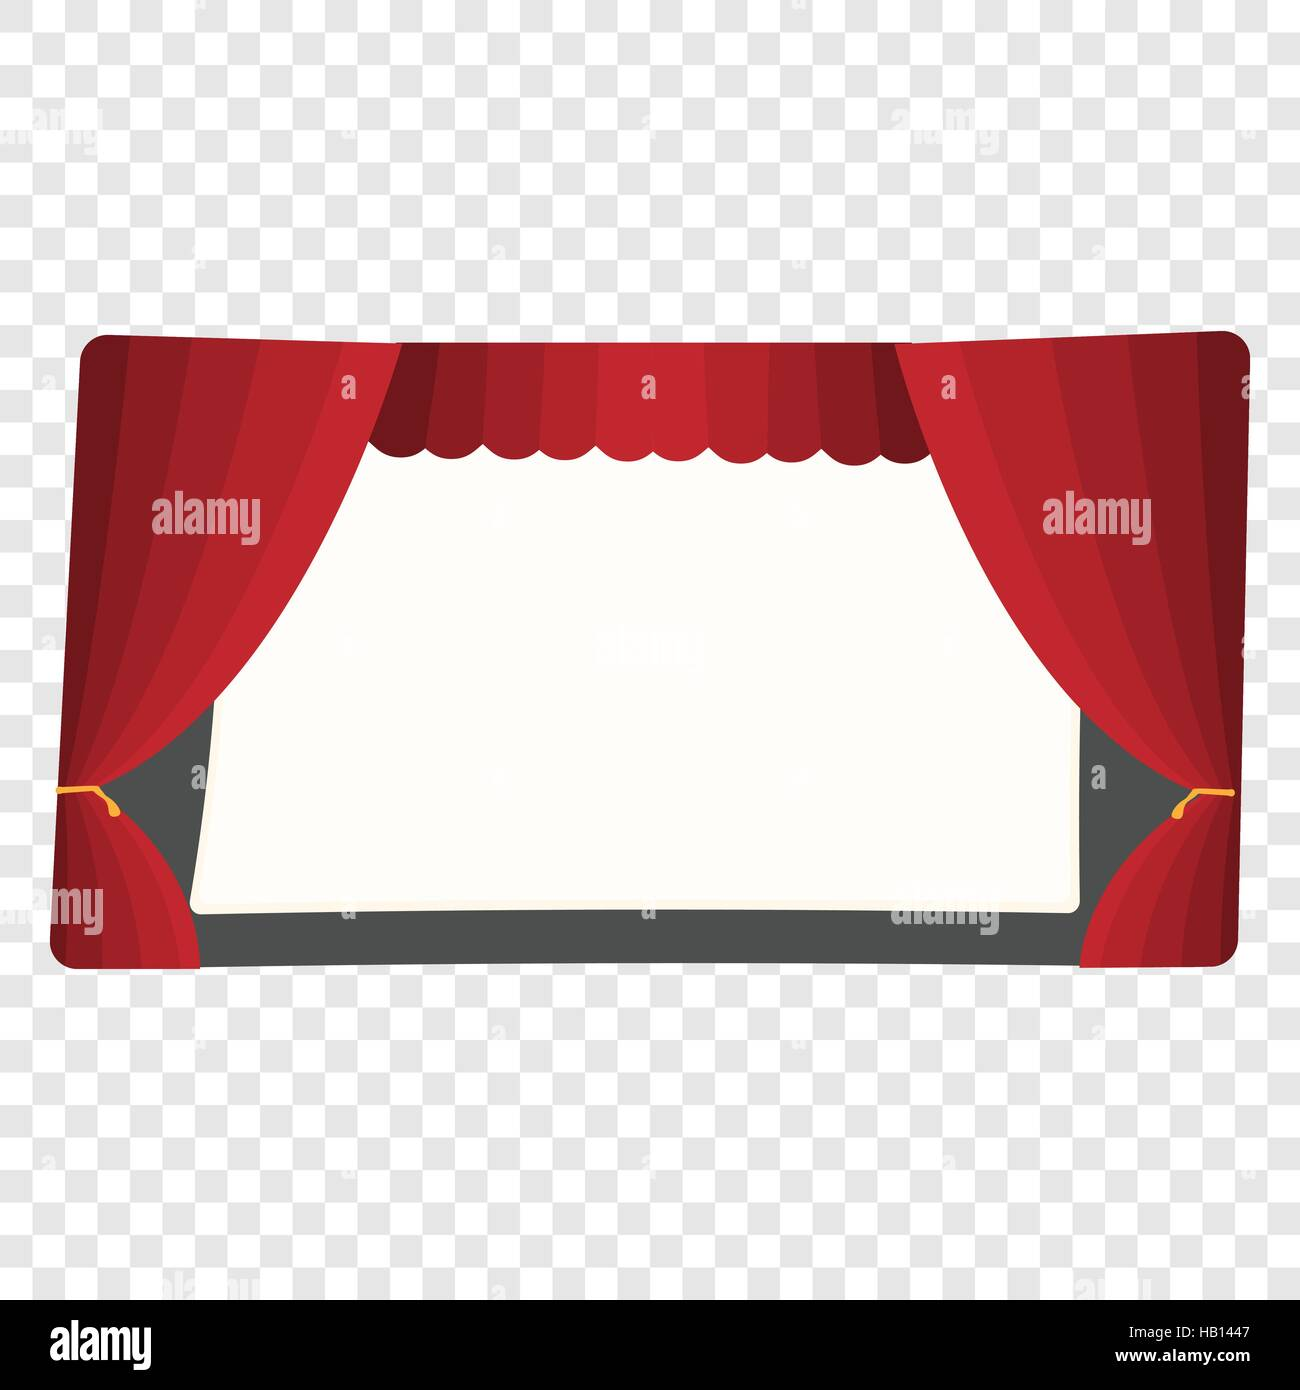 Cartoon theater stage - Stock Vector